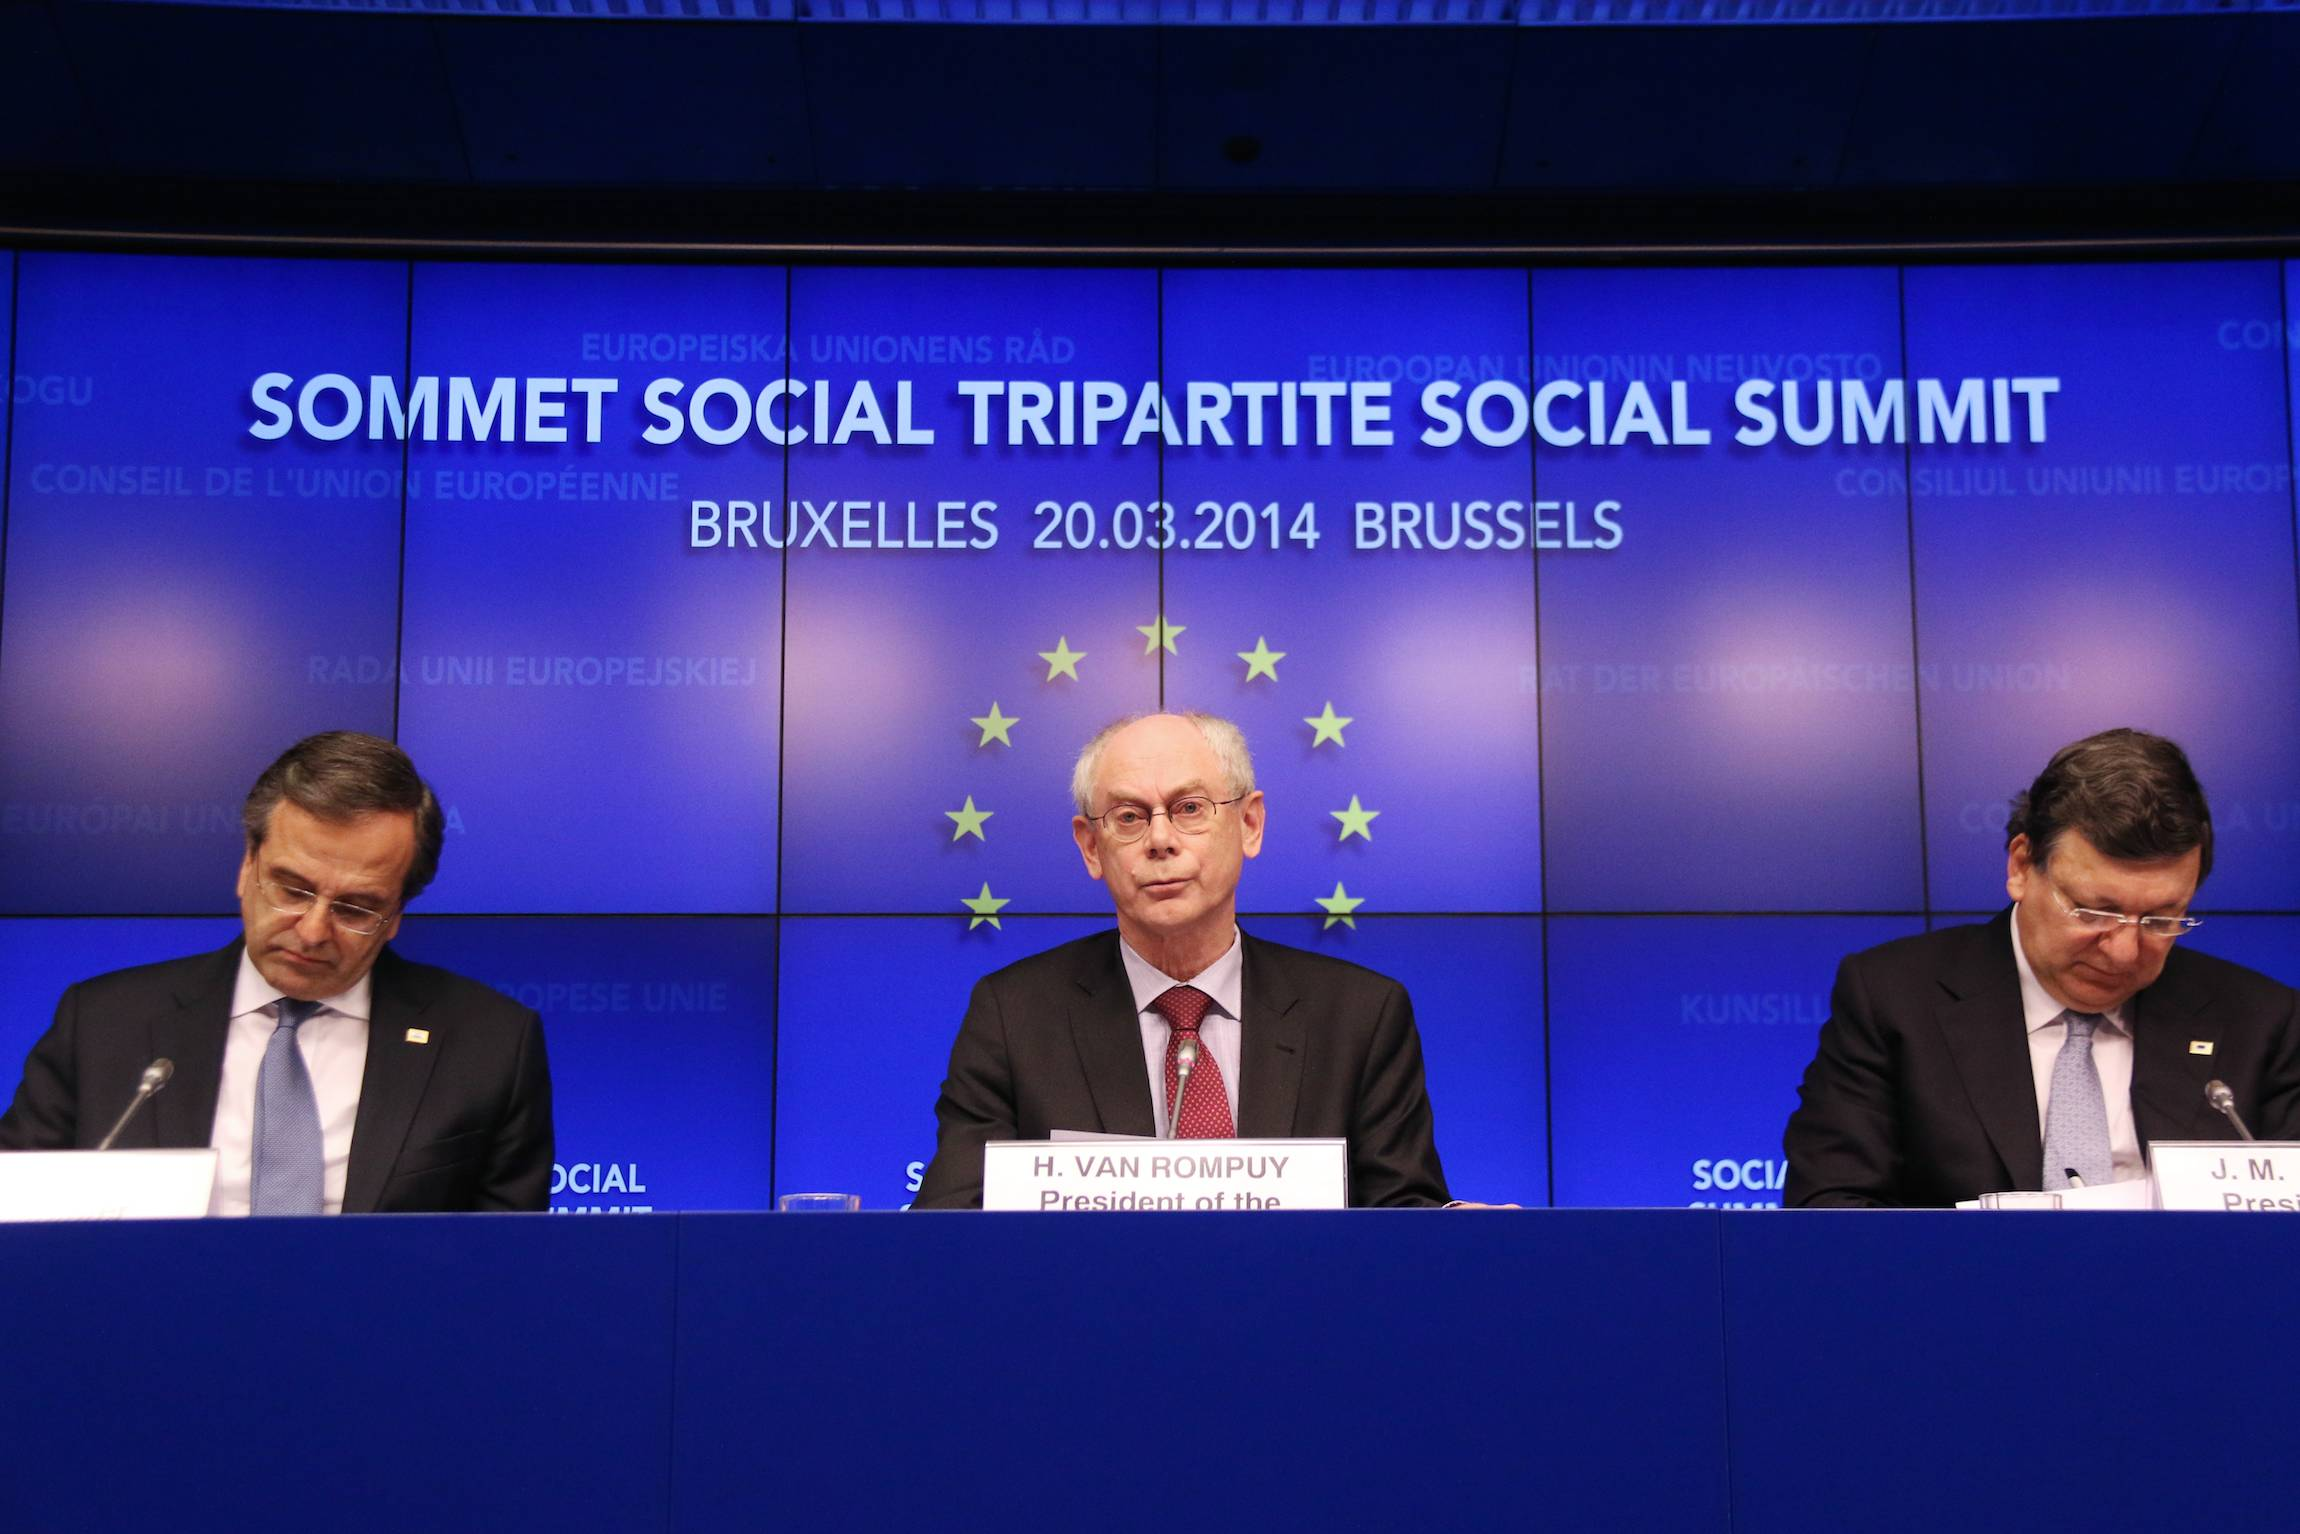 Greek Prime Minister Andonis Samaras, President of the European Council Herman Van Rompuy and the president of the European Commission, José Manuel Barroso (from left), give a press conference following the Tripartite Social Summit, Mar. 20, 2014, in Brussels, Belgium.